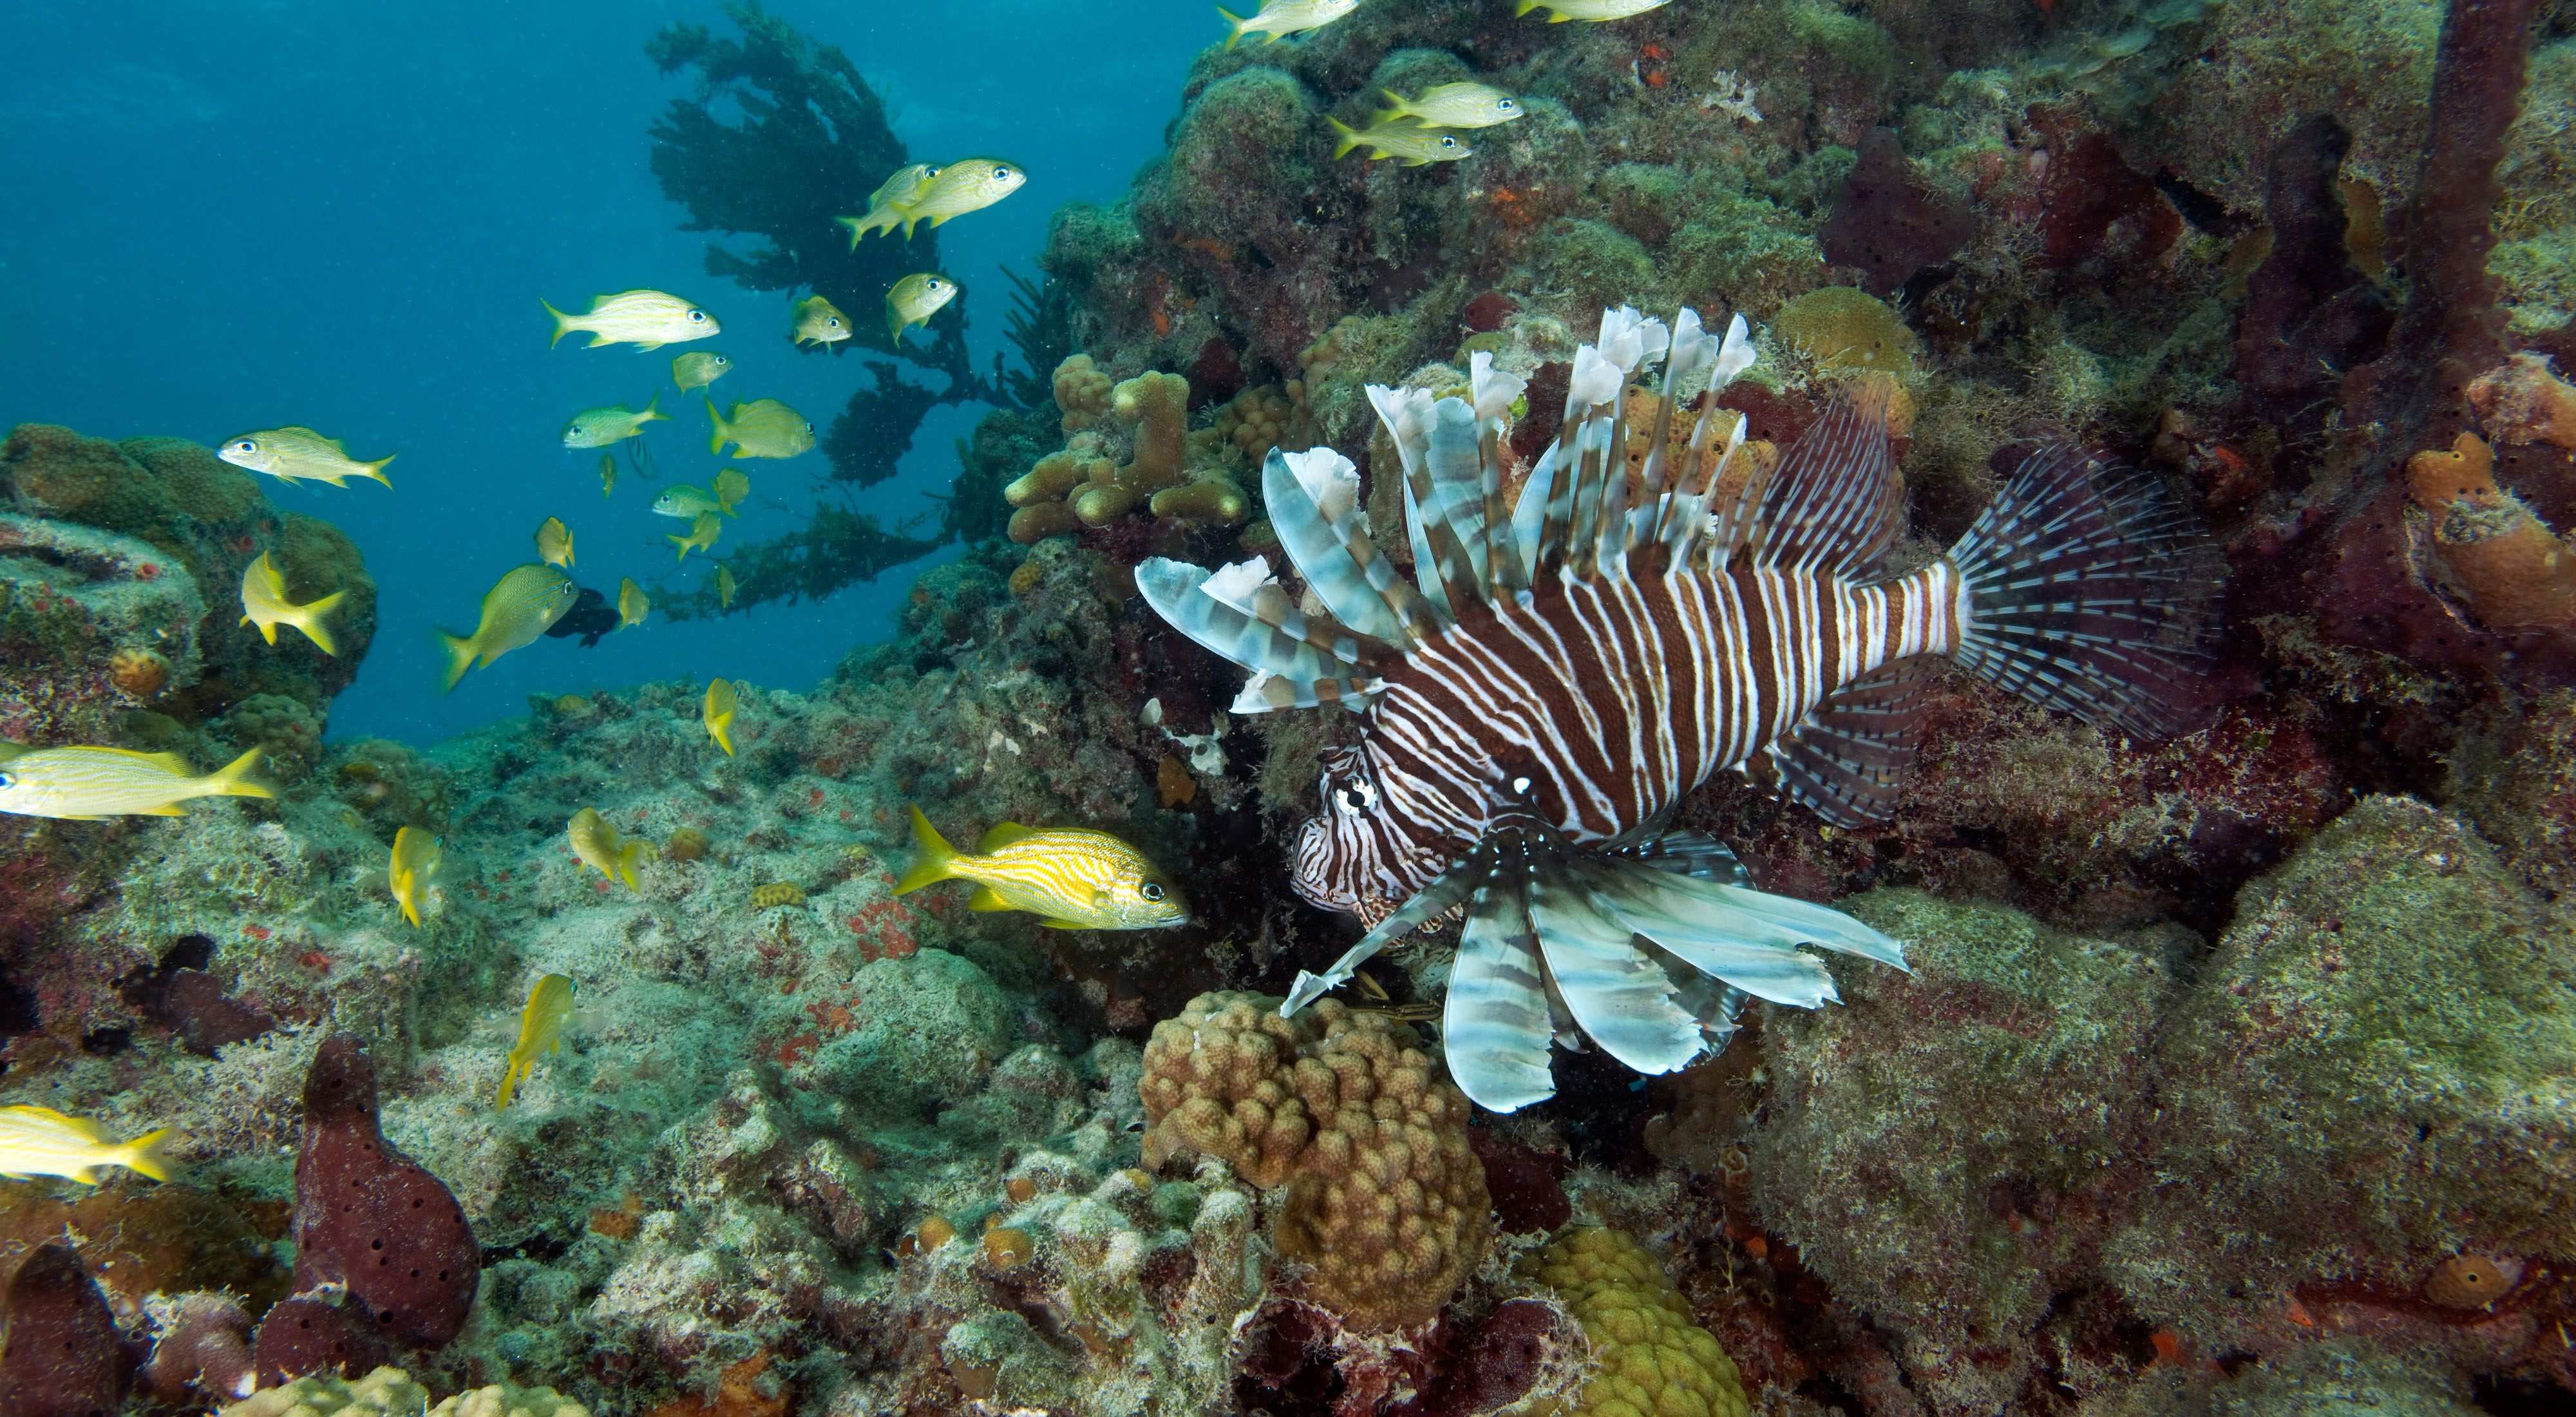 Invasive lionfish swims over a Florida coral reef with other reef fish.